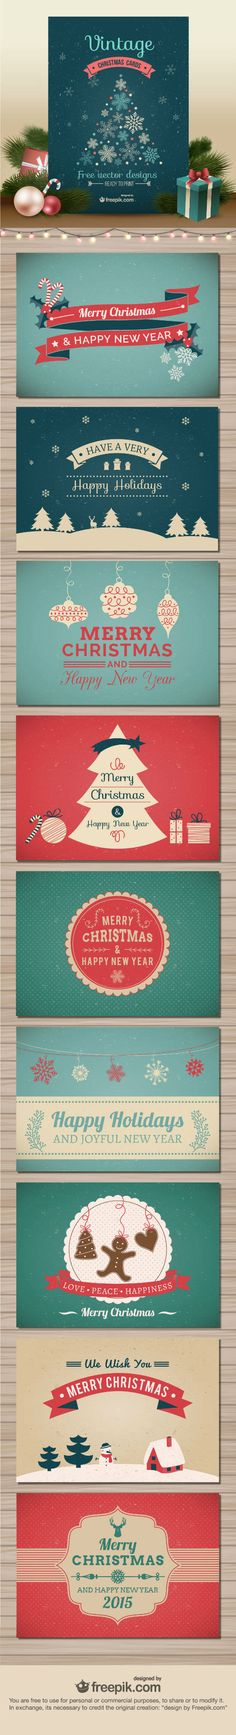 Christmas Card Greetings Business Sayings : 10 Free Vector Christmas Cards Created by Freepik; Creative Christmas Cards, Xmas Cards, Holiday Cards, Noel Christmas, Christmas Design, Vintage Christmas, Christmas Ideas, Christmas Graphics, Festivals